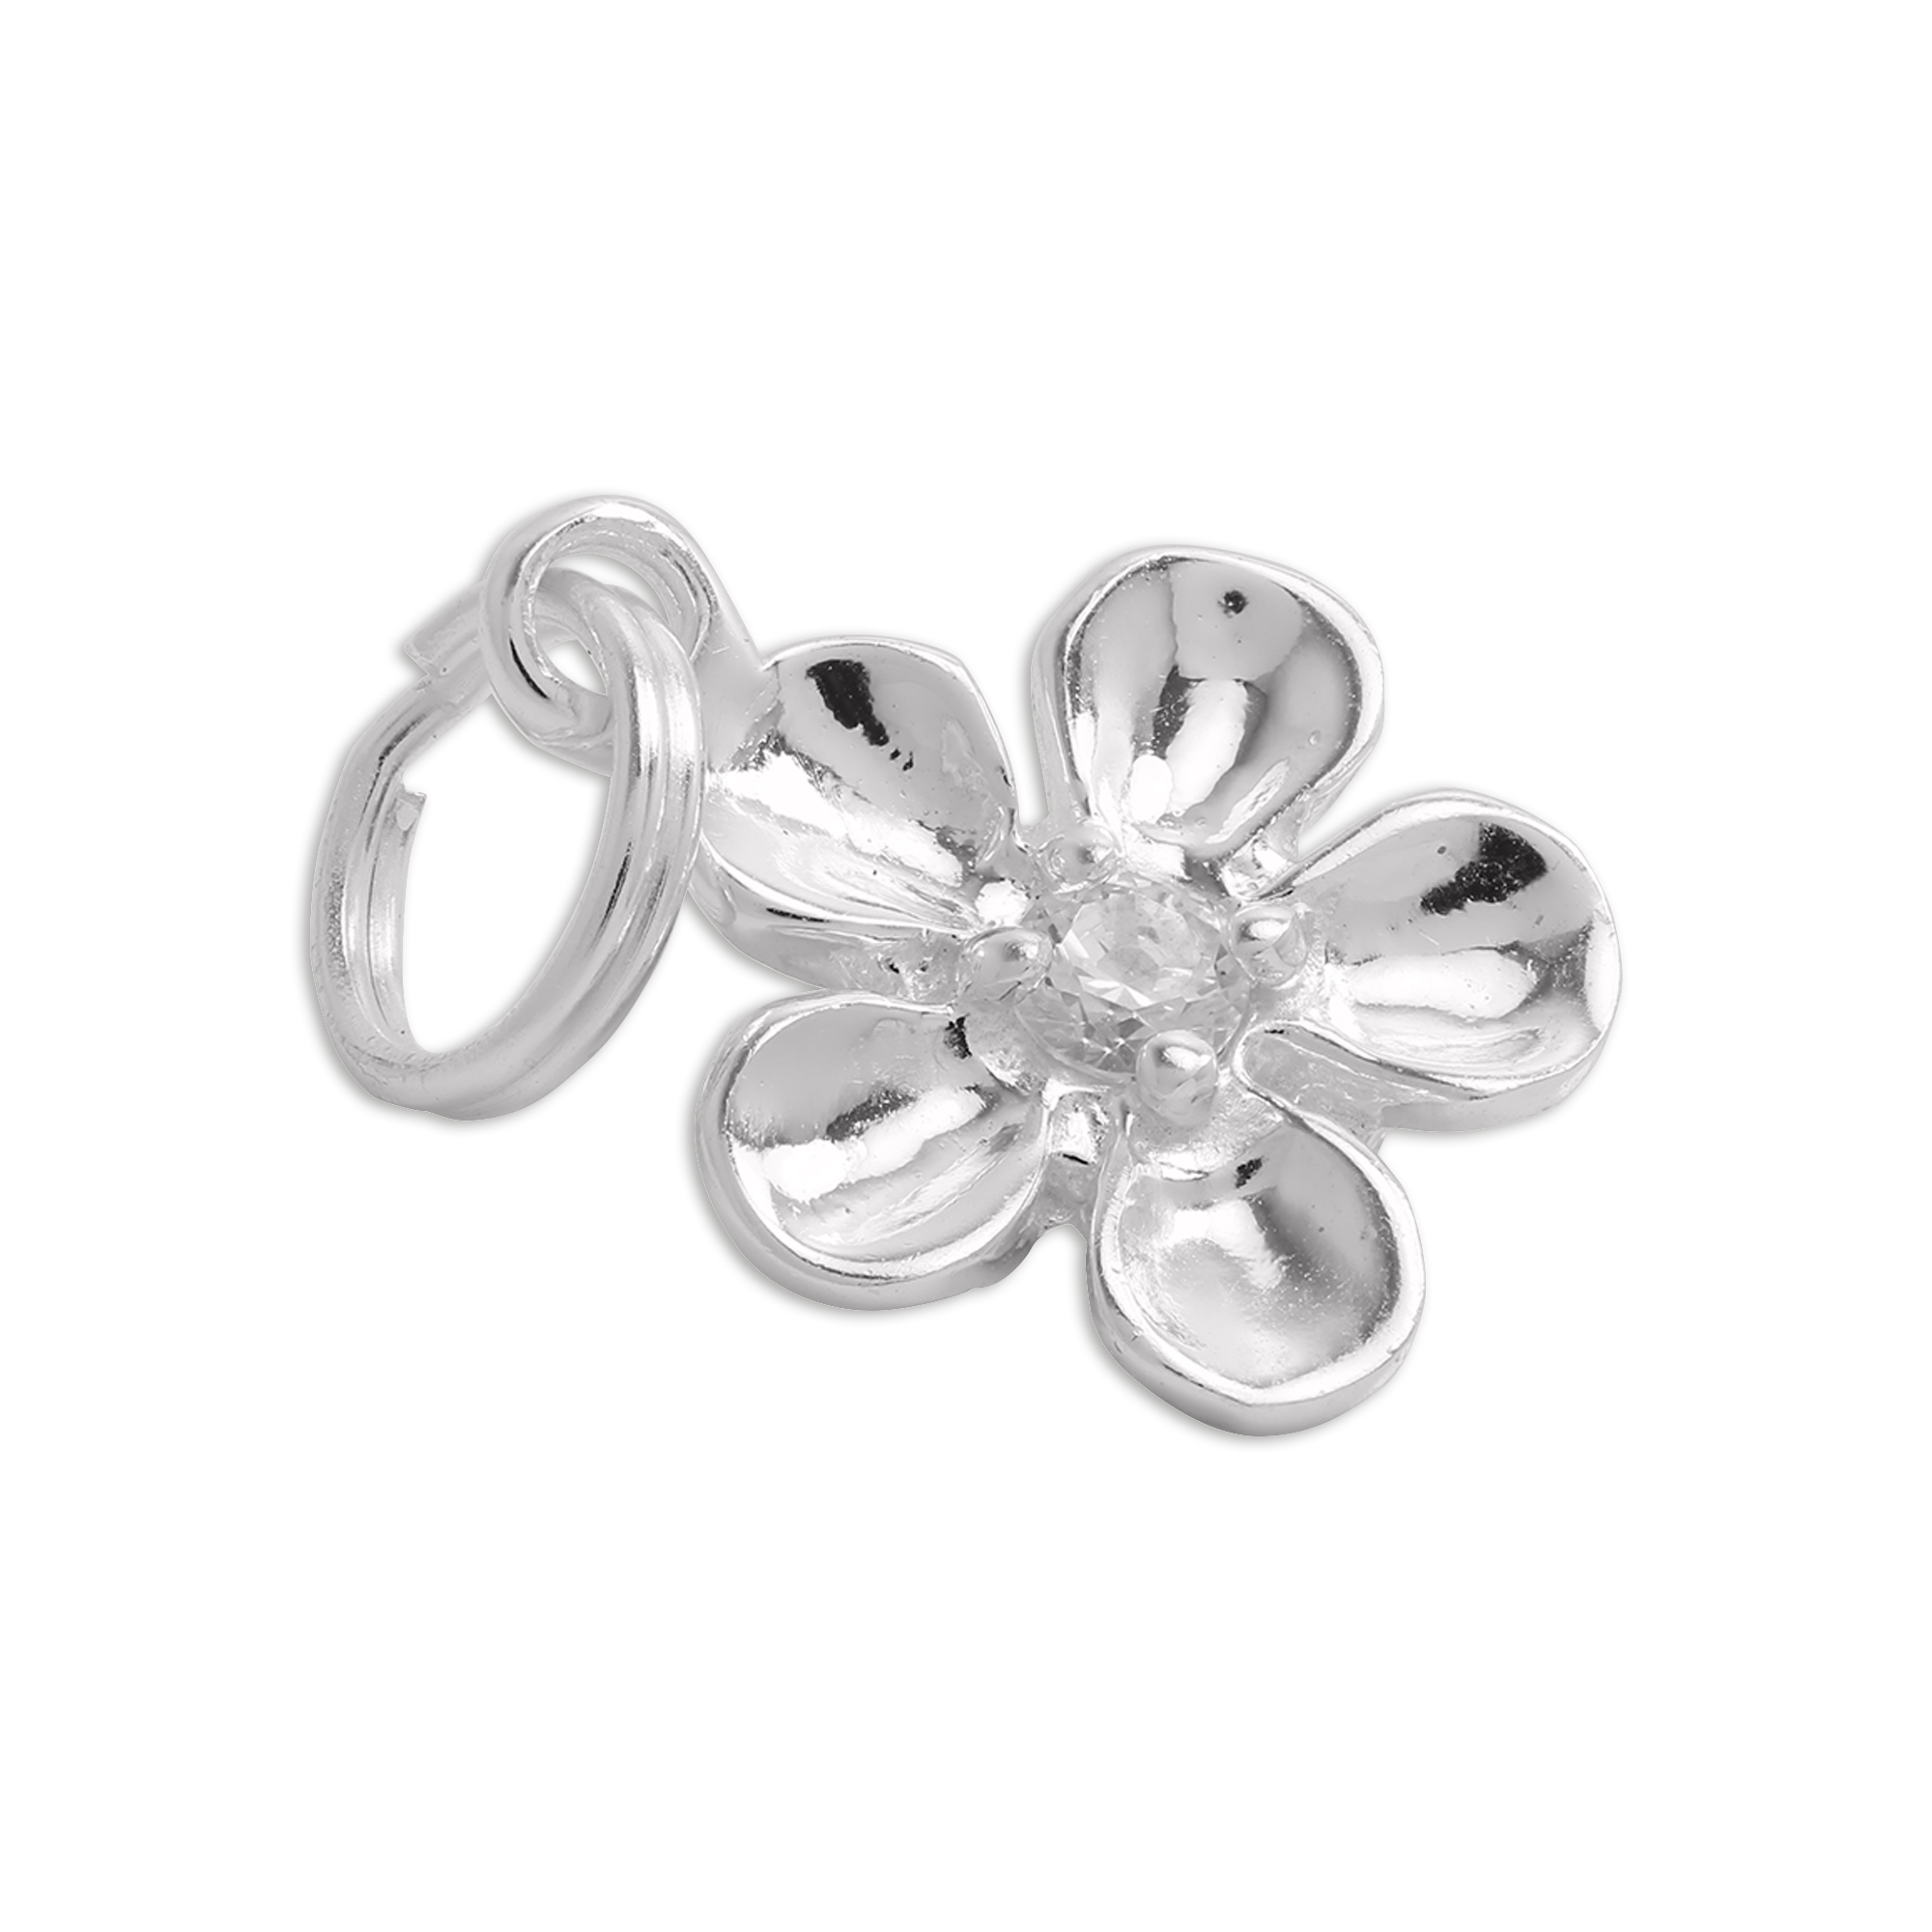 An image of Sterling Silver Flower Charm with Clear CZ Crystal